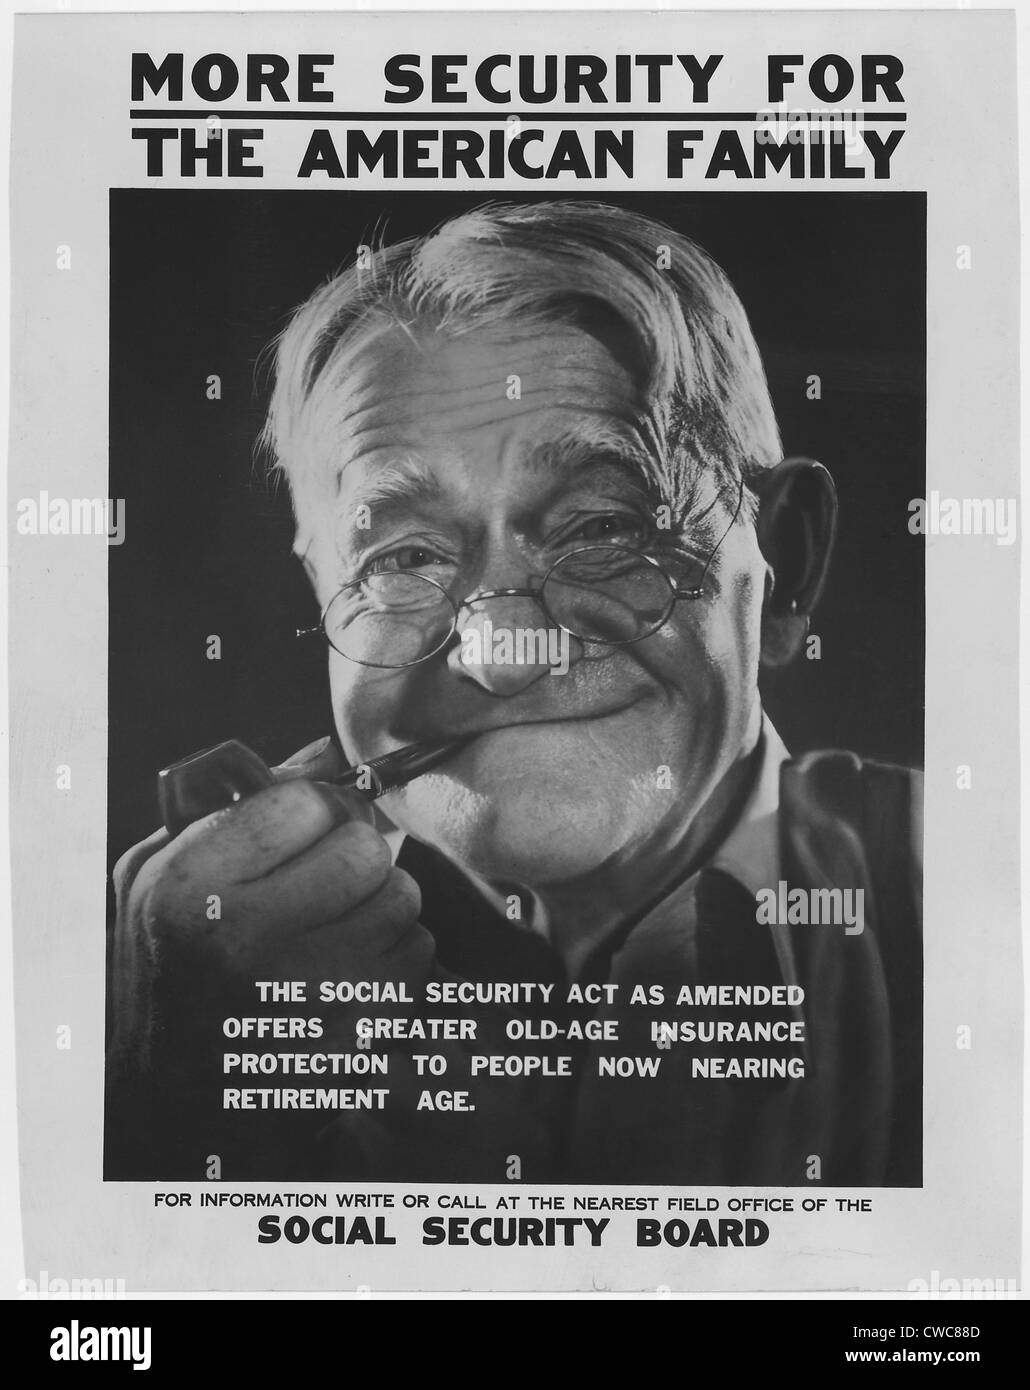 1930s poster publicizing the benefits available to elderly Americans under the new Social Security programs. - Stock Image